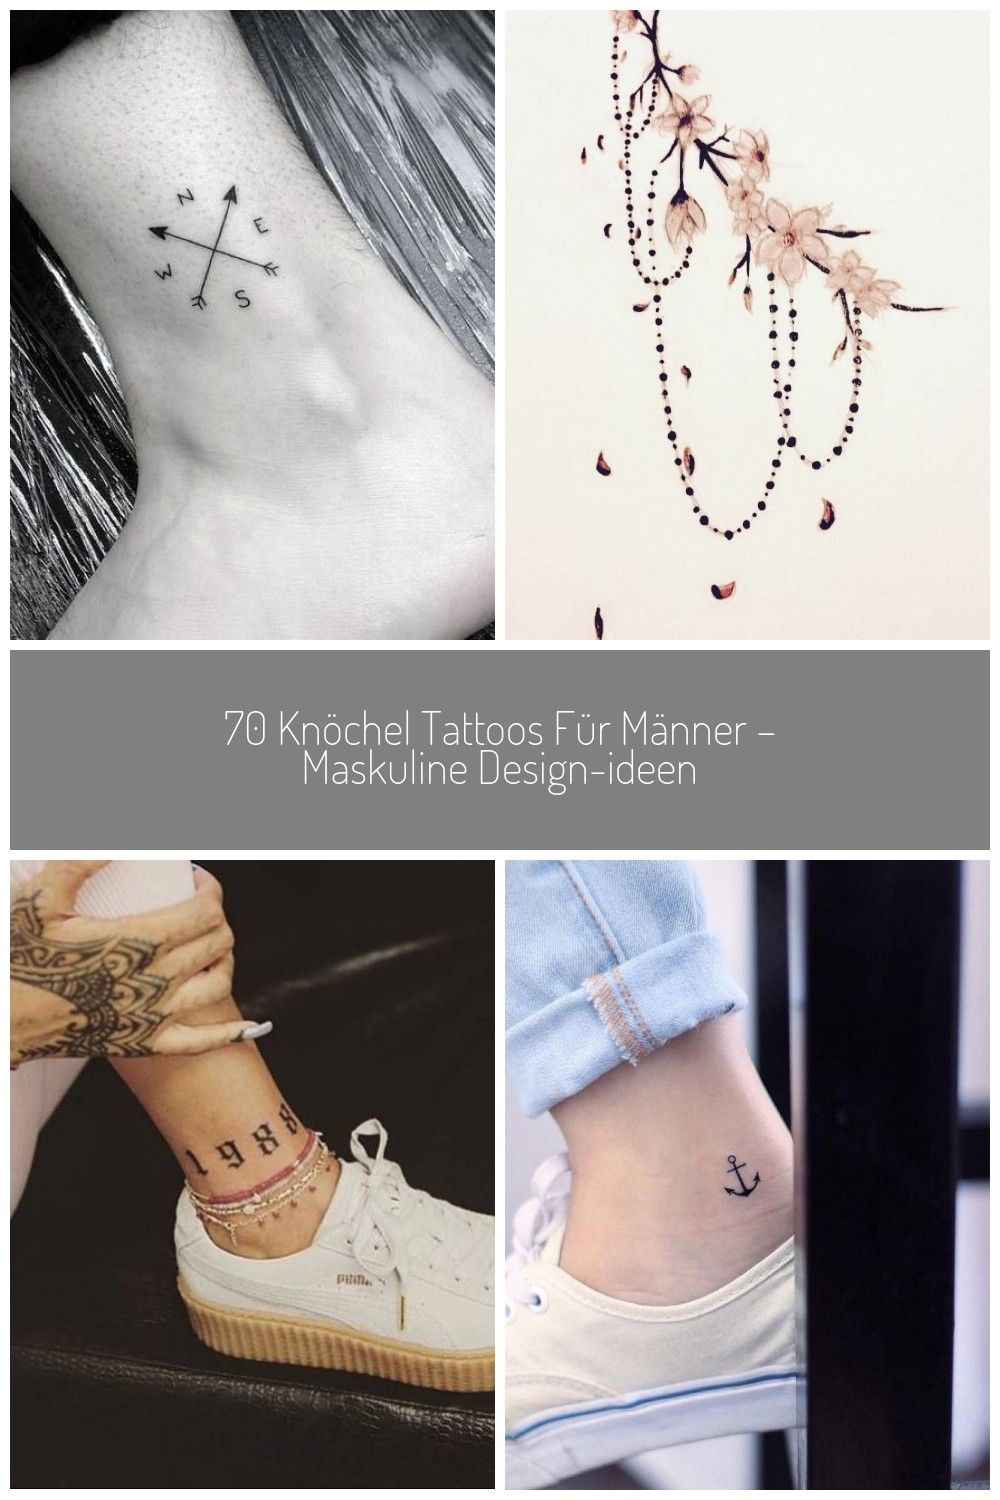 tattoos maskuline manner knochel ideen design ankle